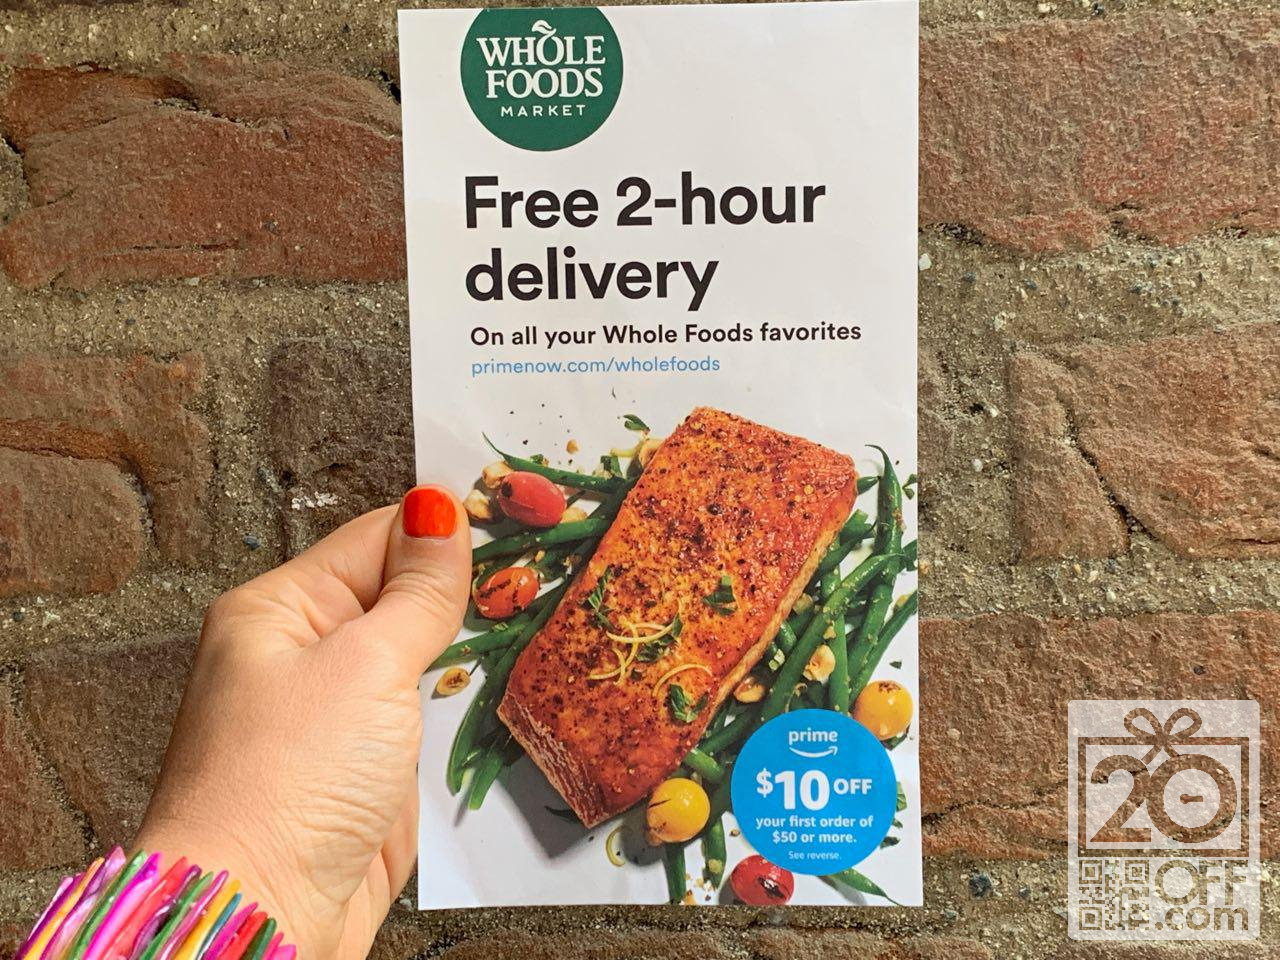 Prime Whole Foods Free Delivery